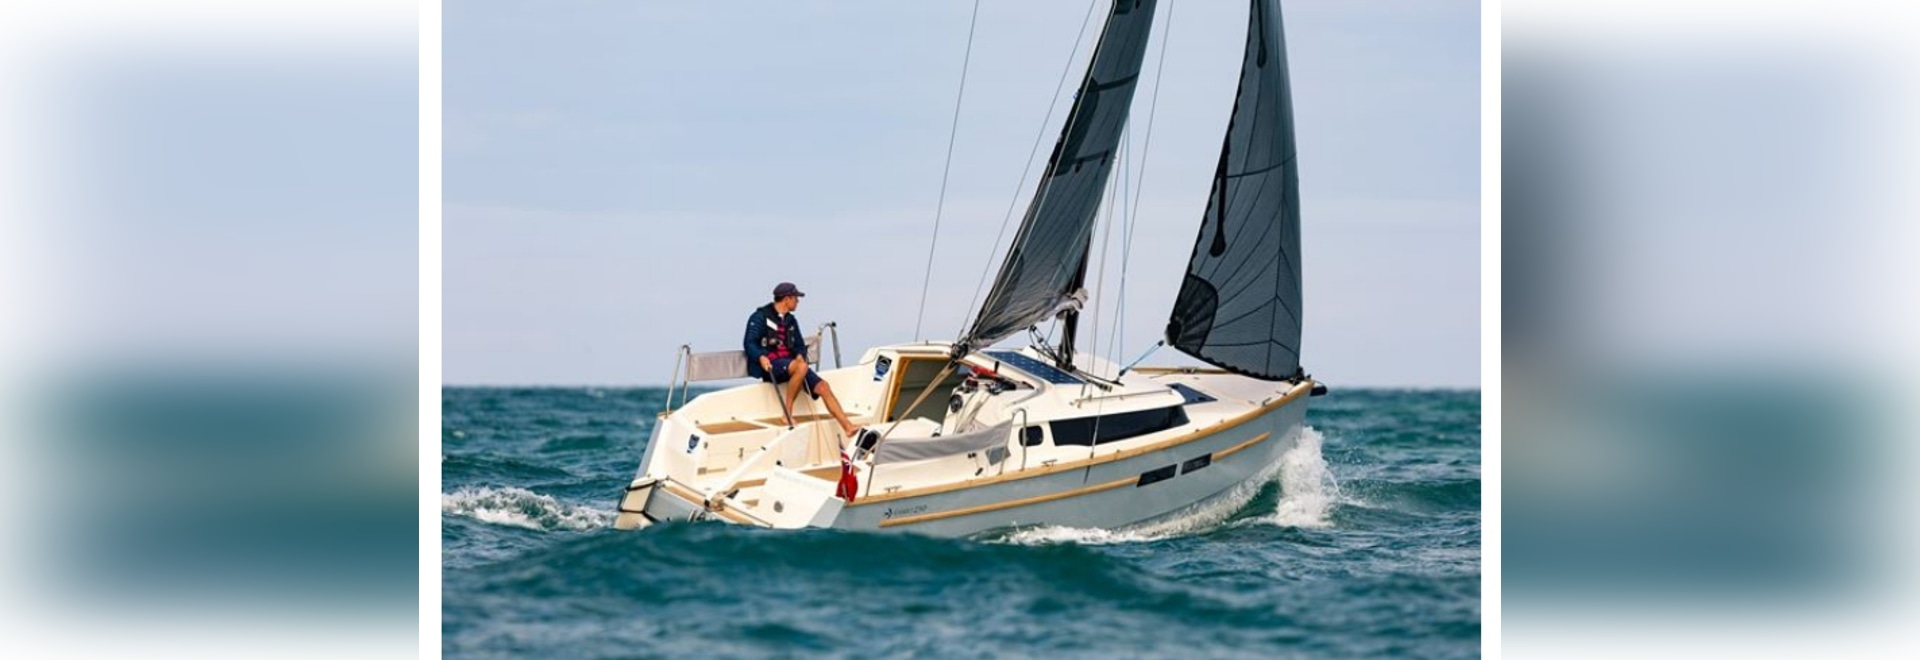 A carbon rig and laminate sails contribute to the sprightly performance.